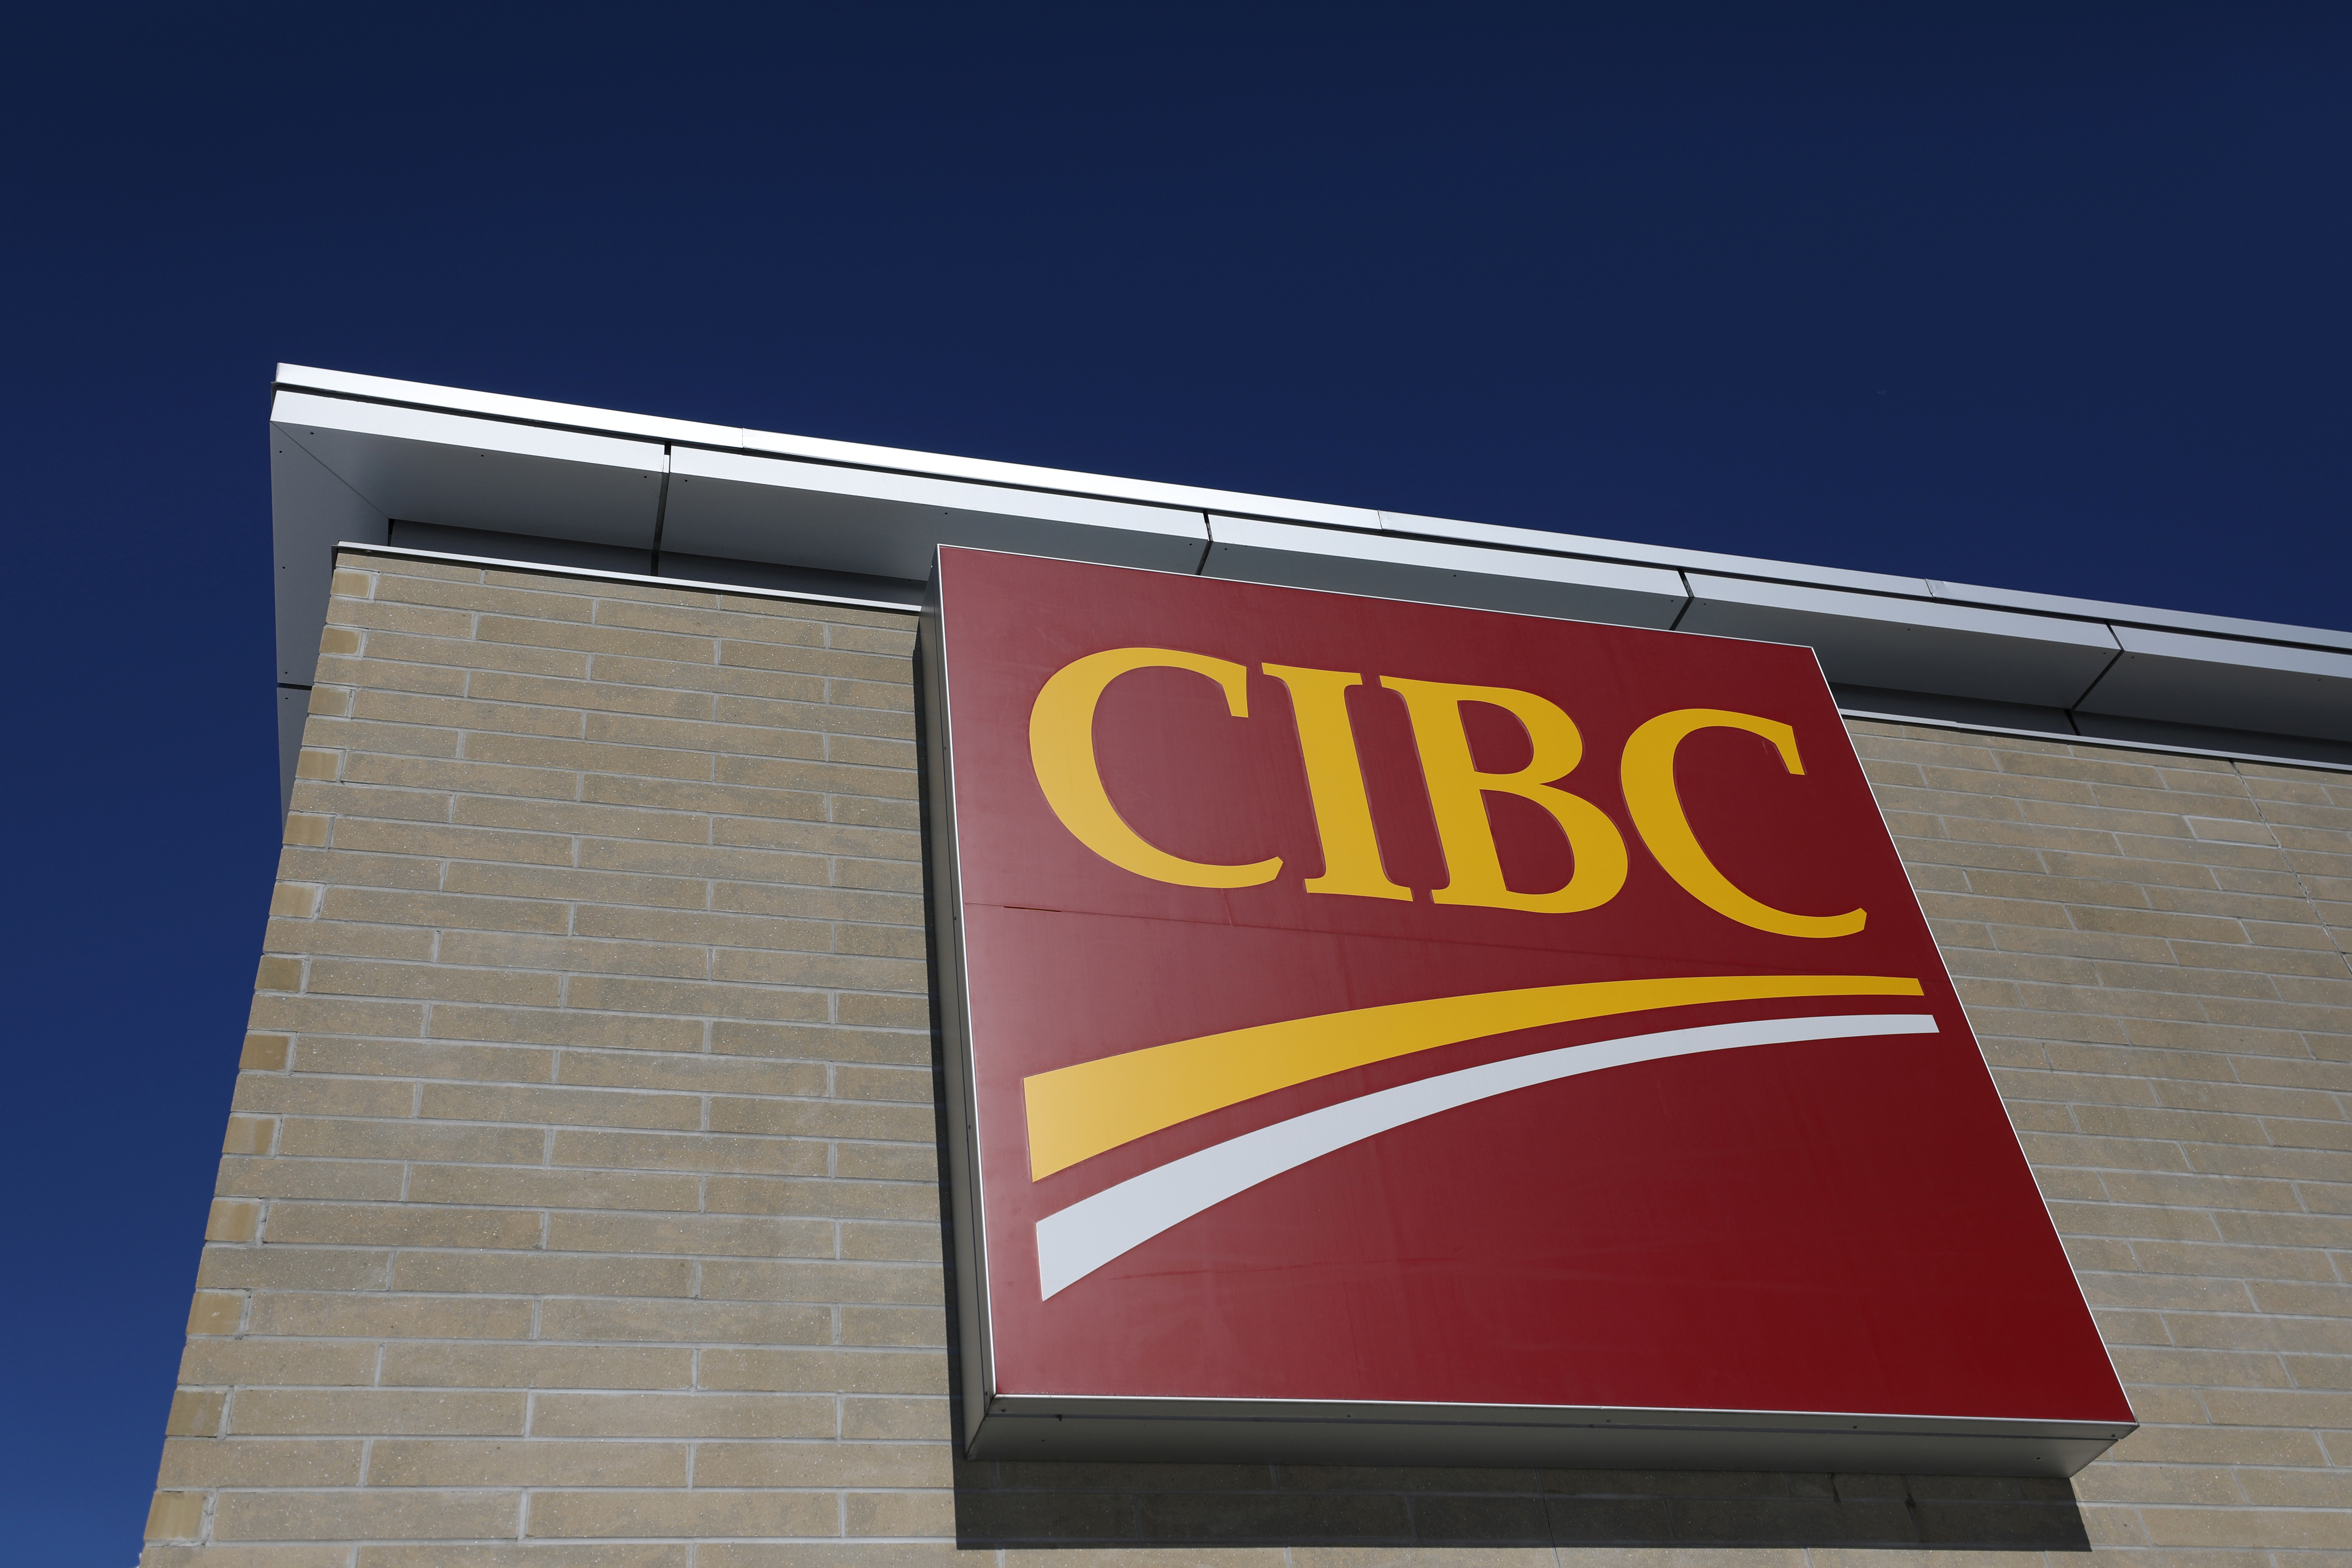 The Canadian Imperial Bank of Commerce (CIBC) logo is seen outside of a branch in Ottawa, Ontario, Canada, February 14, 2019. REUTERS/Chris Wattie